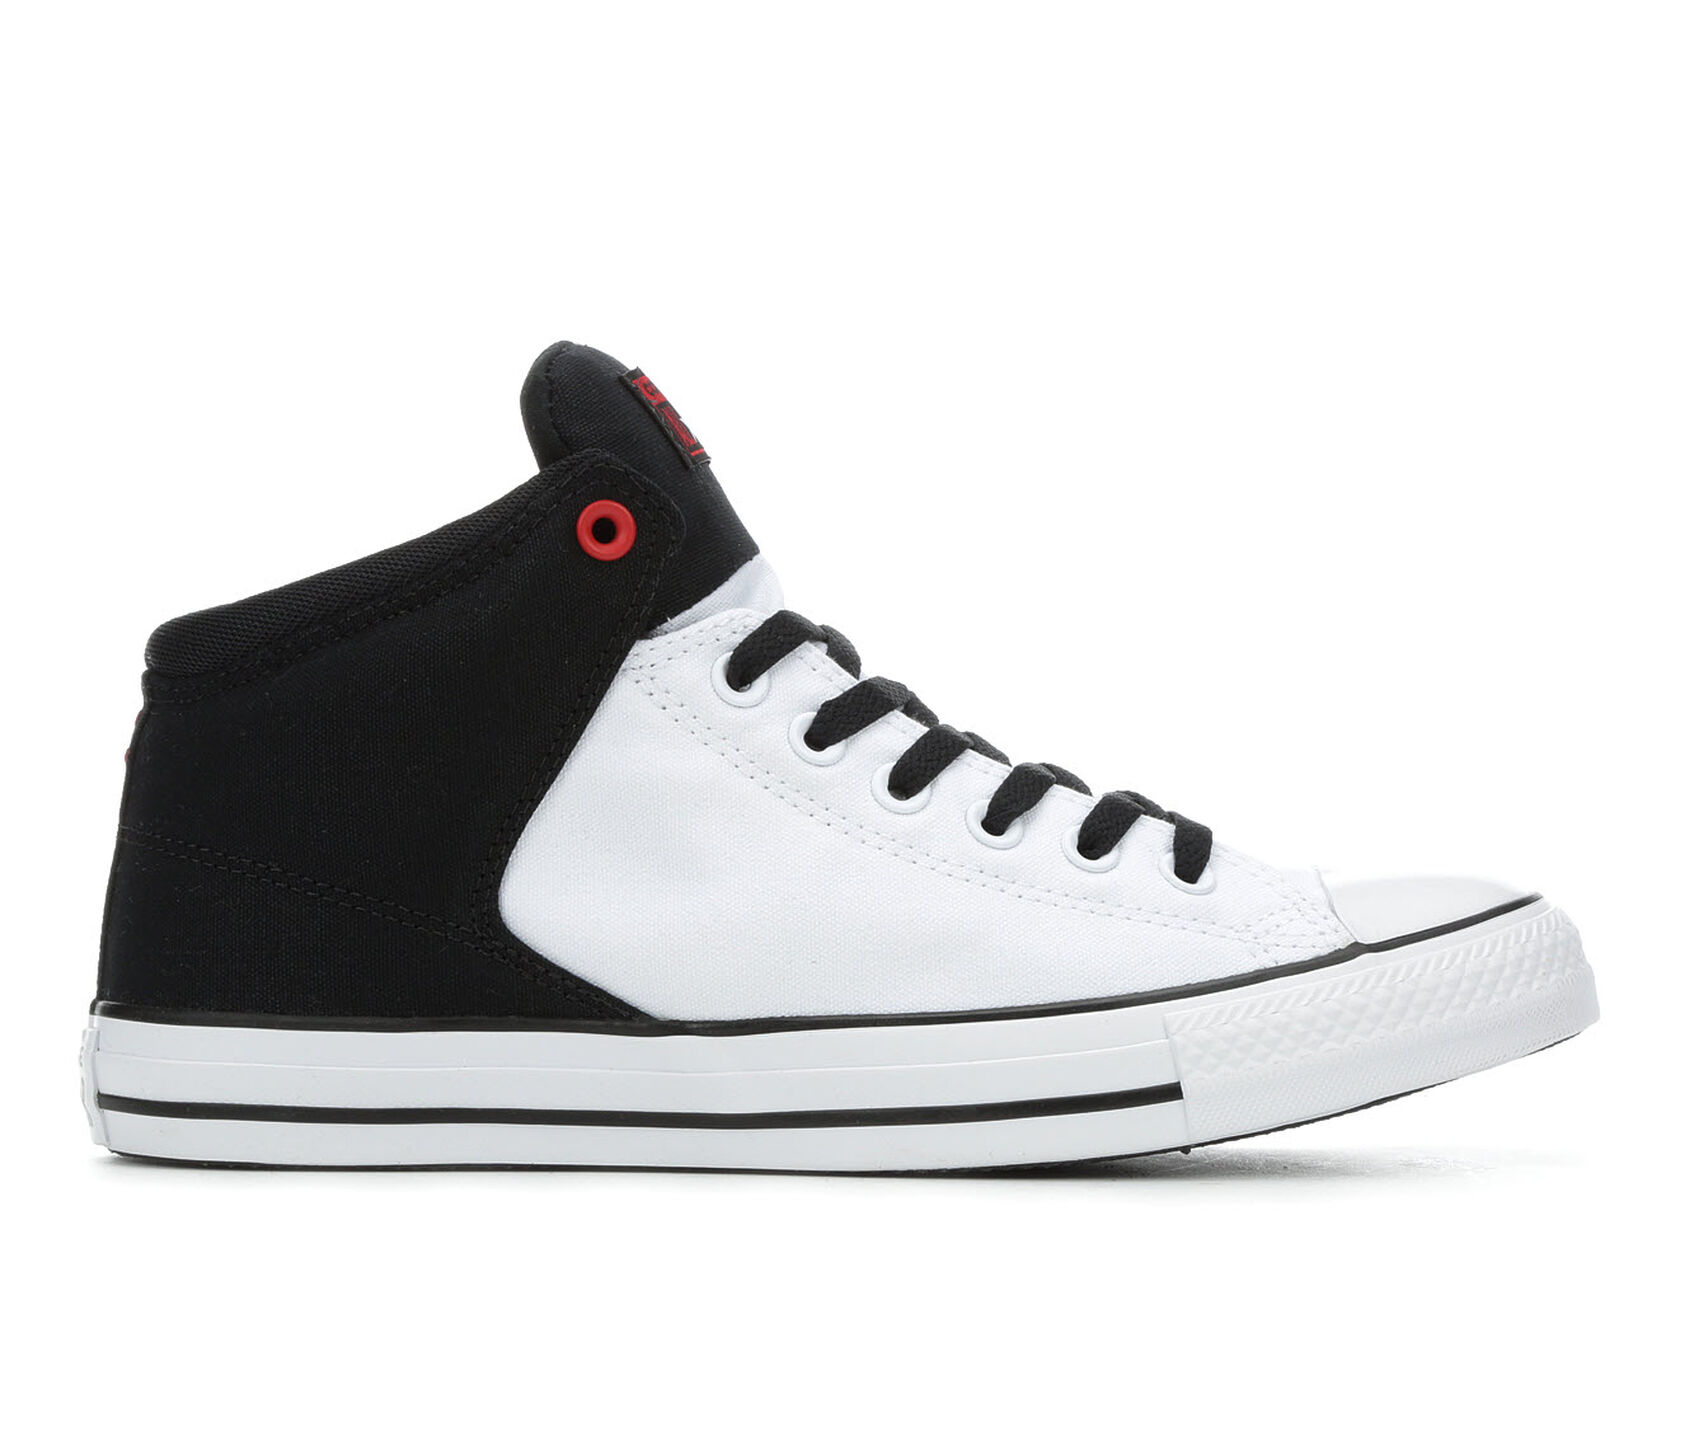 54279a3c85 Adults' Converse Chuck Taylor All Star High Street Hi Sneakers